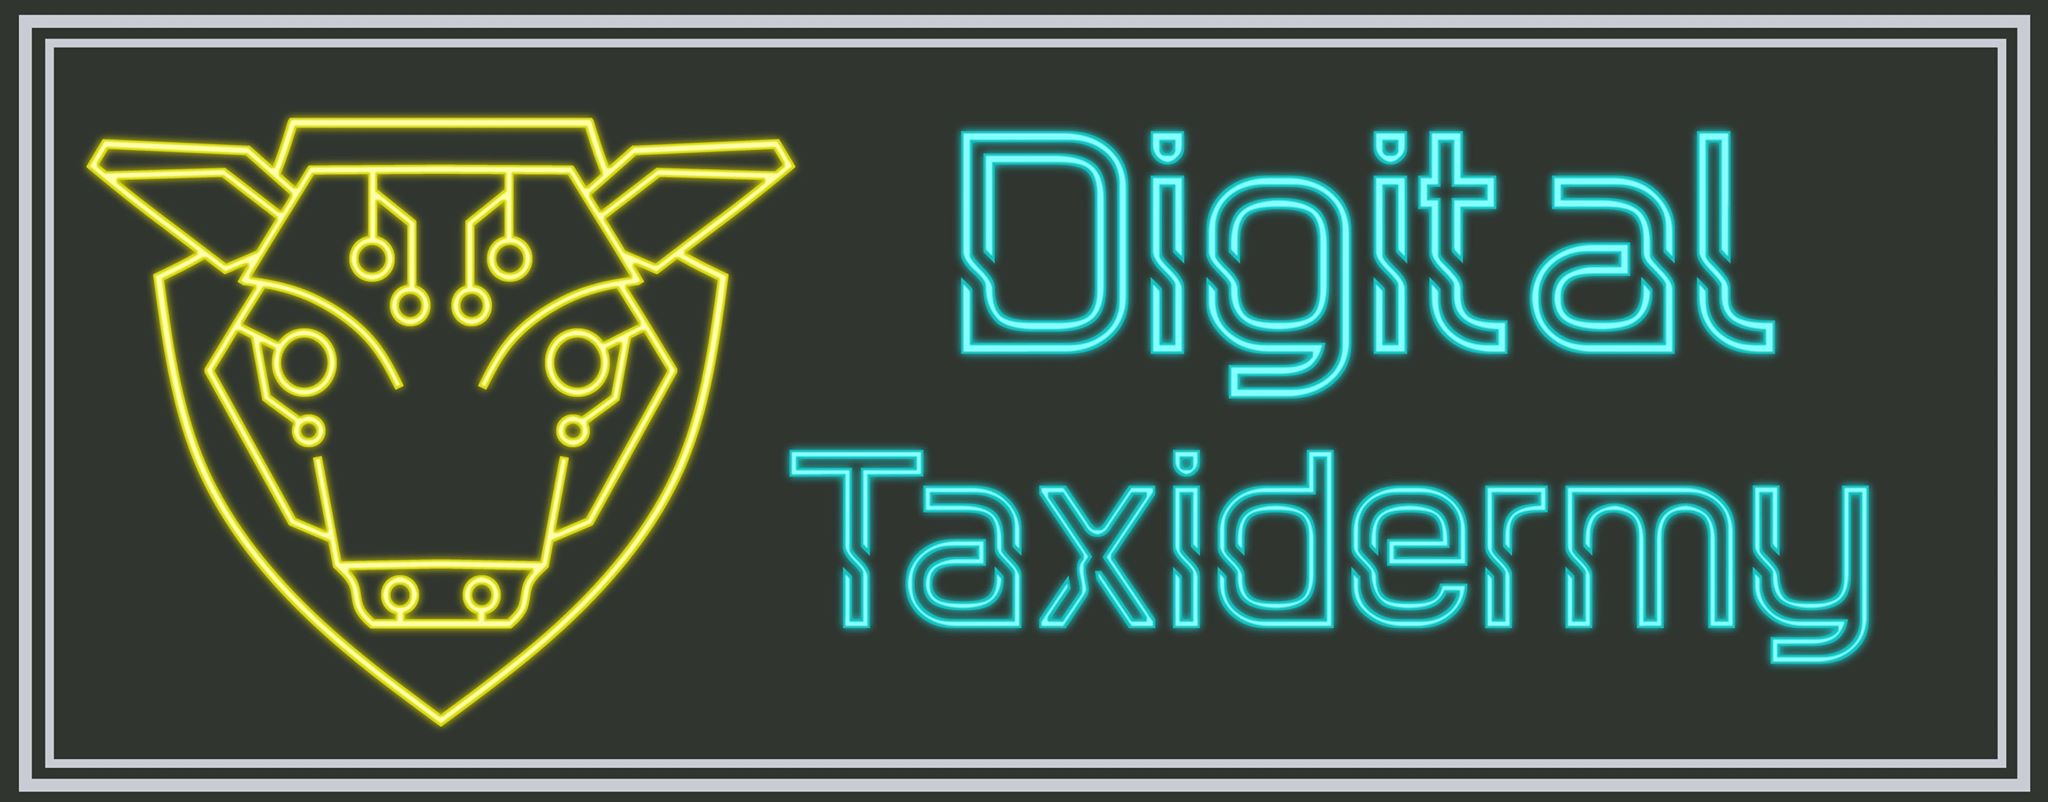 Digital Taxidermy - STL Files and 3D printed models for tabletop gaming